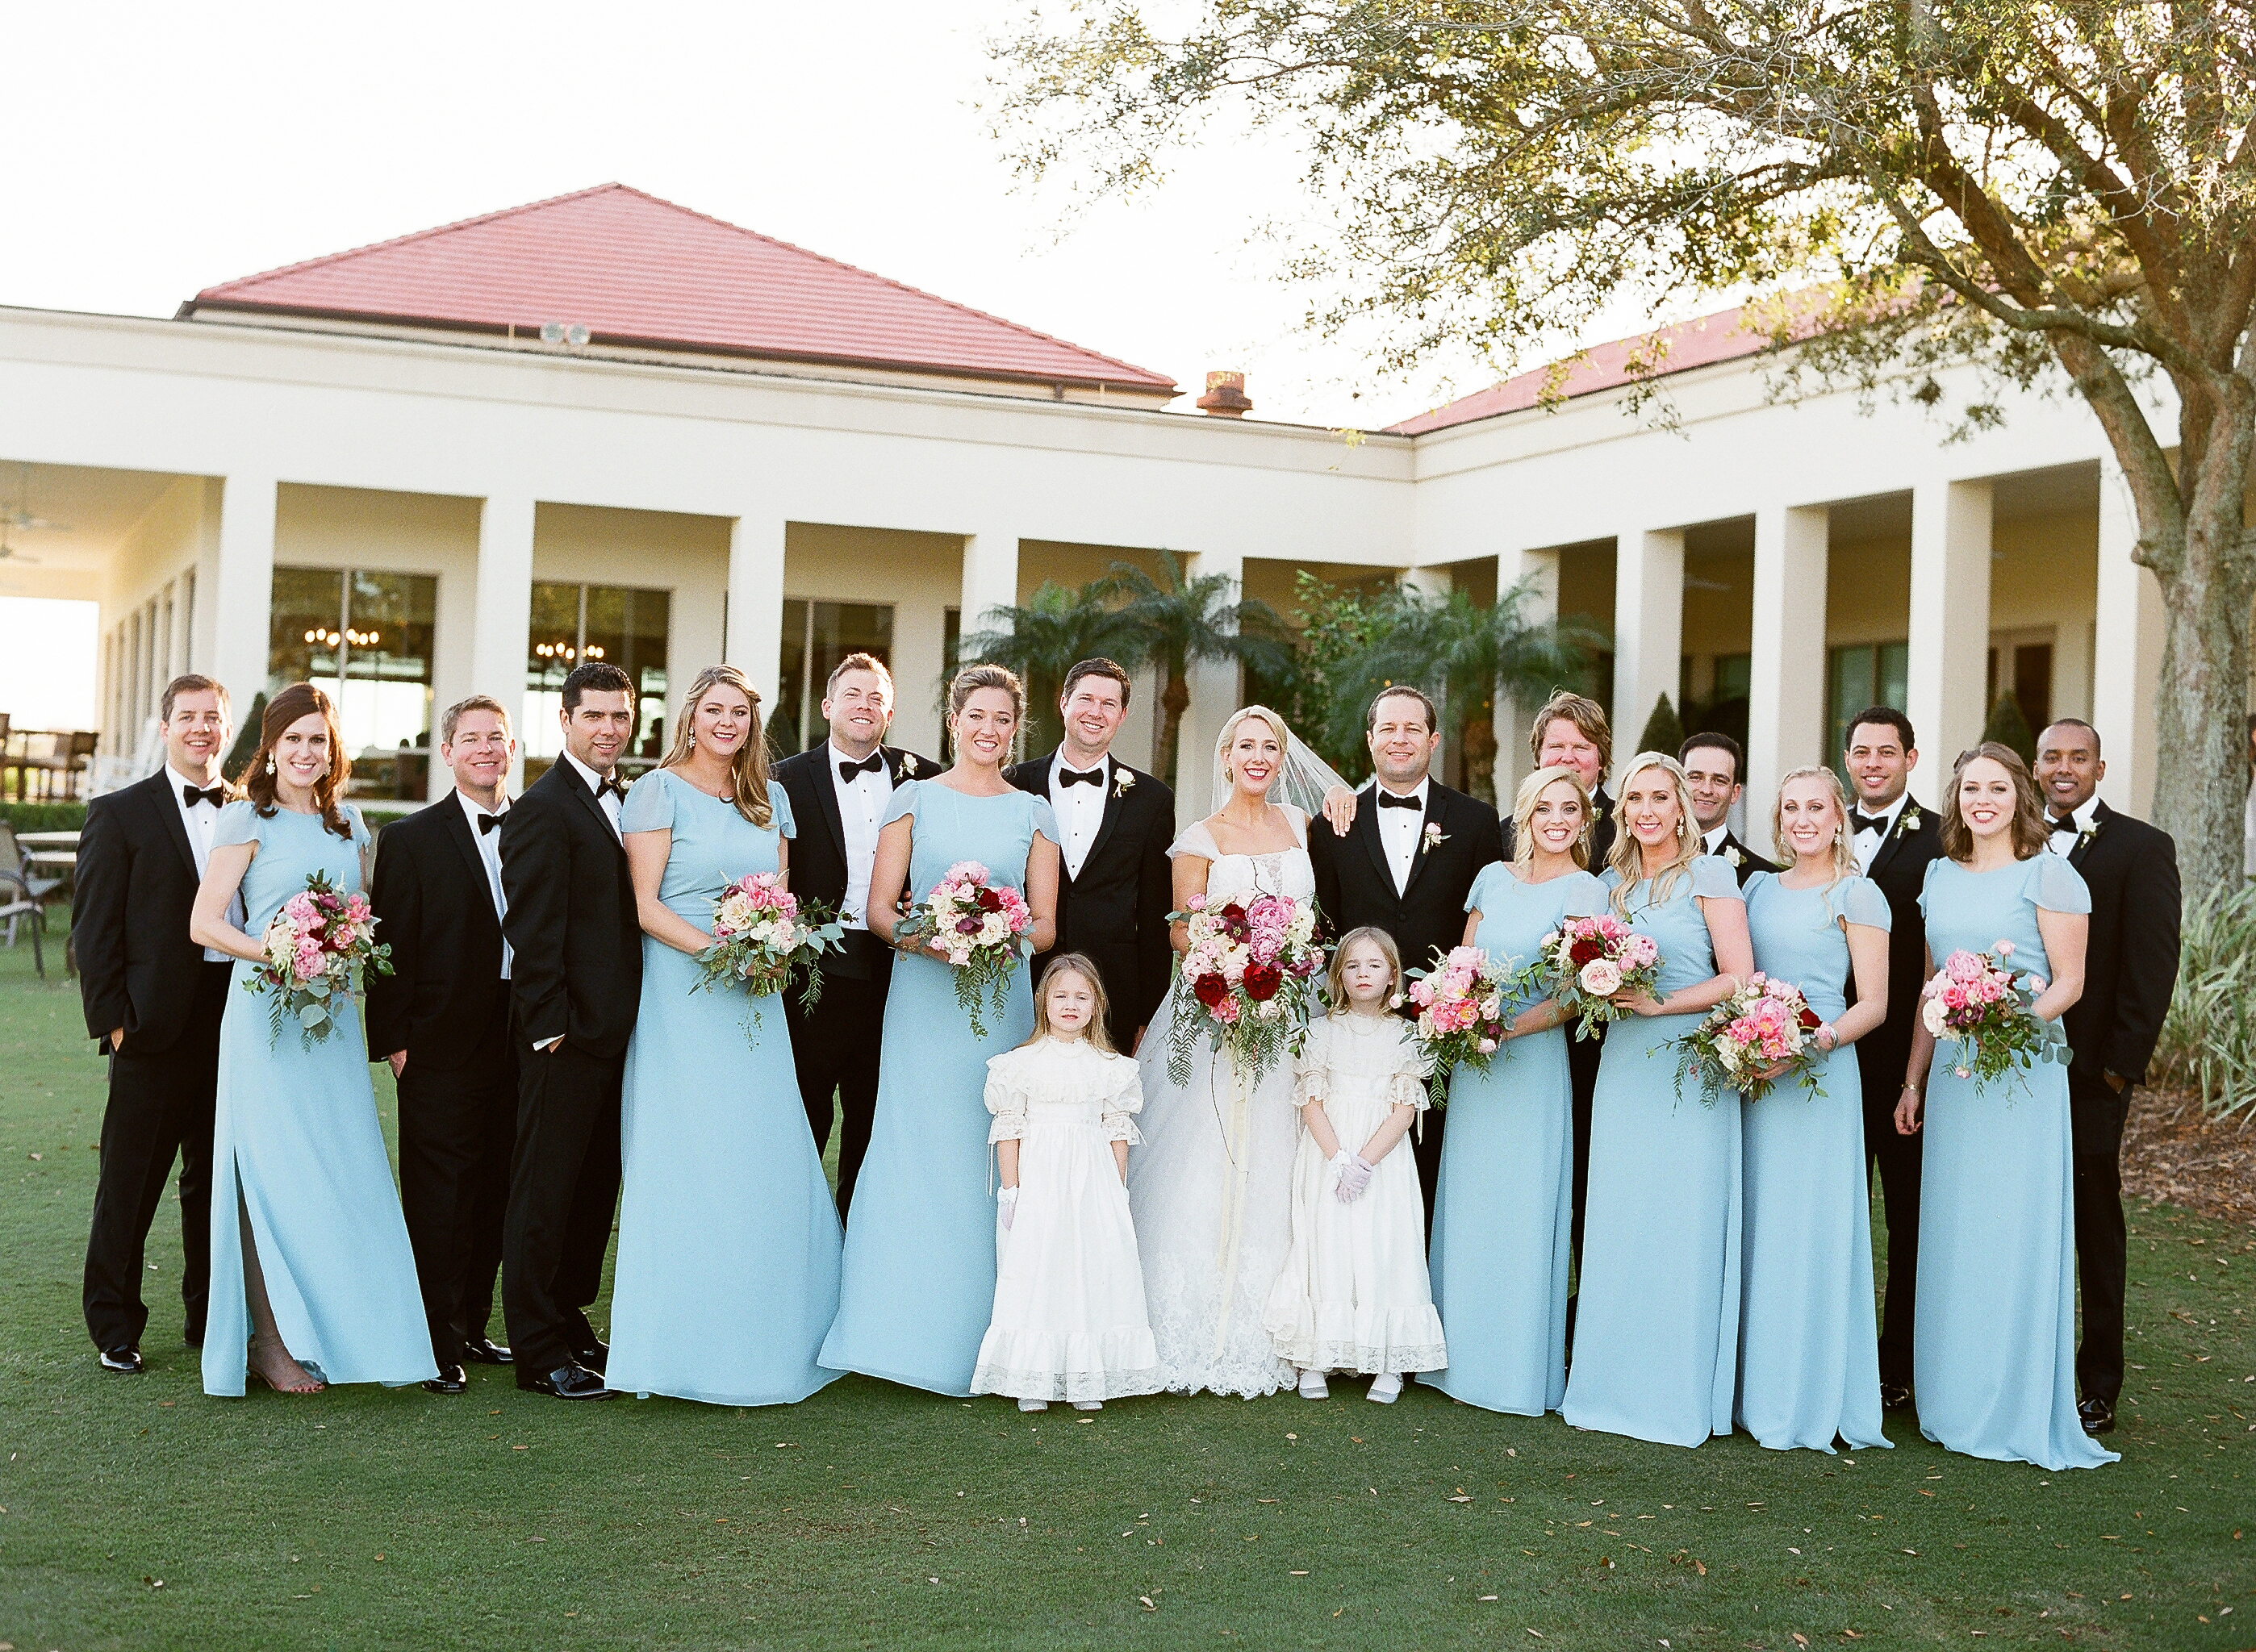 Charleston Wedding Photographers Virgil Bunao Erica and Josh | Orlando Wedding | Part Two